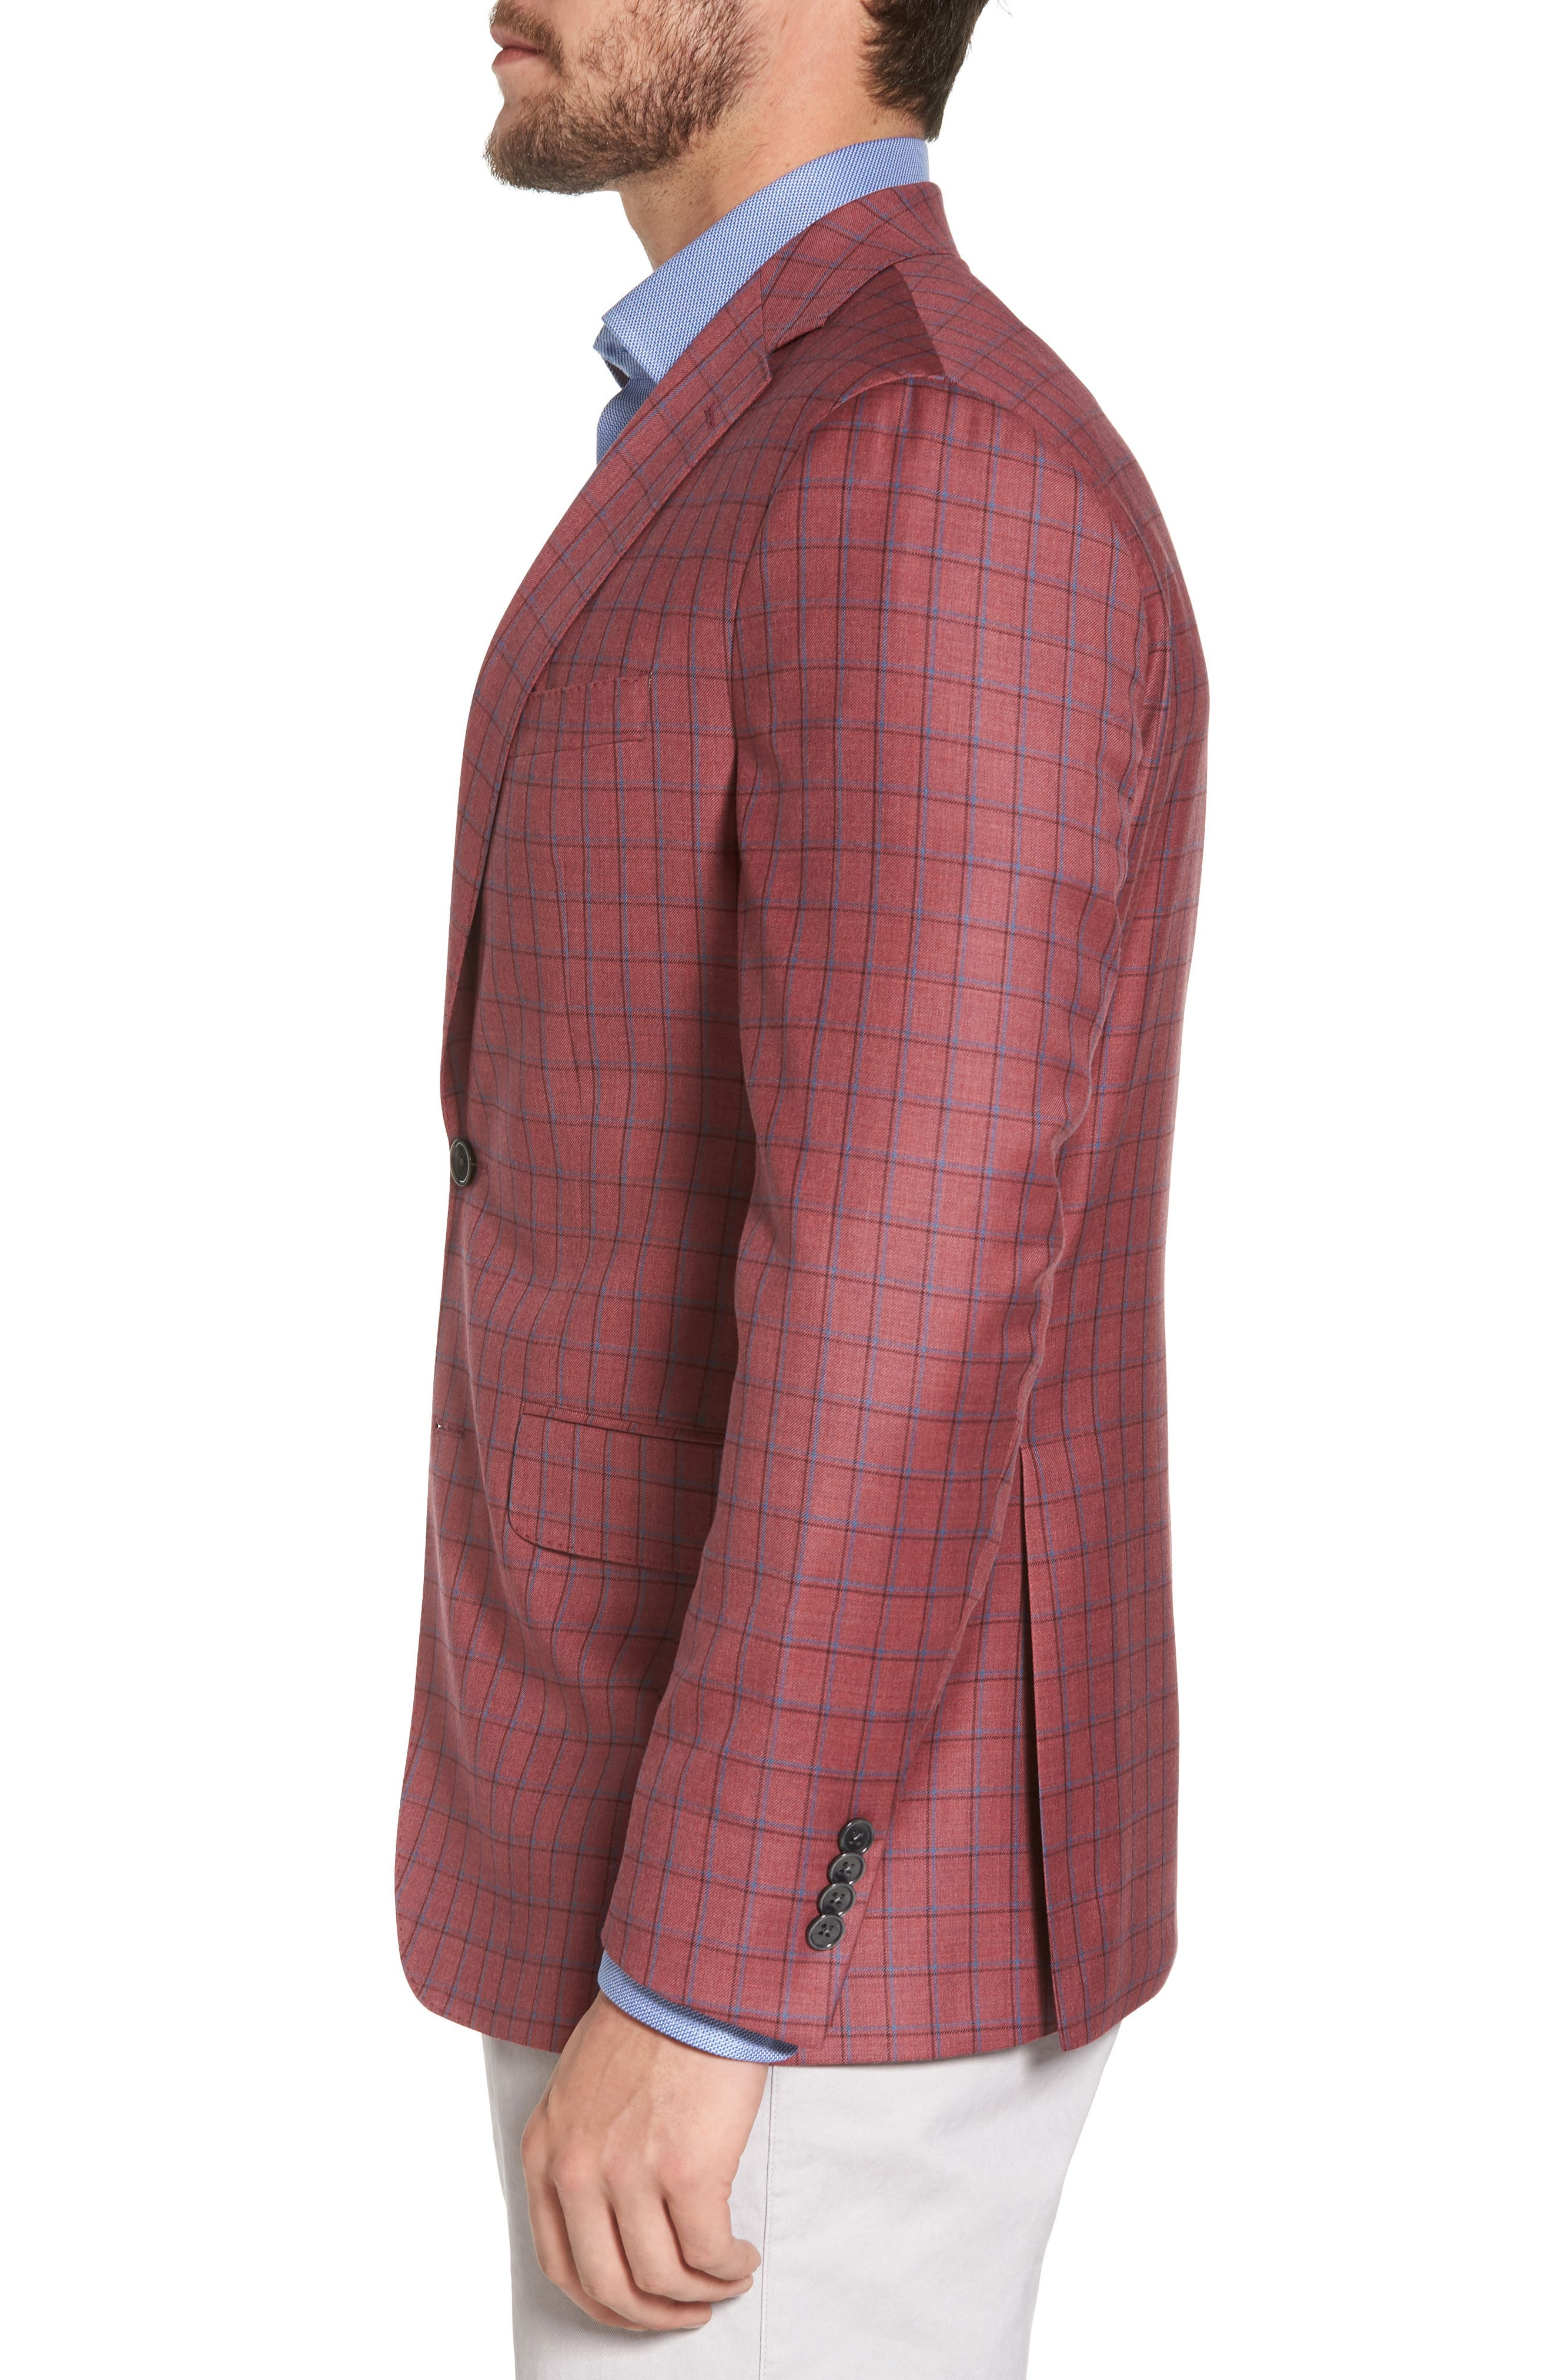 Arnold Classic Fit Plaid Wool Sport Coat,                             Alternate thumbnail 3, color,                             600